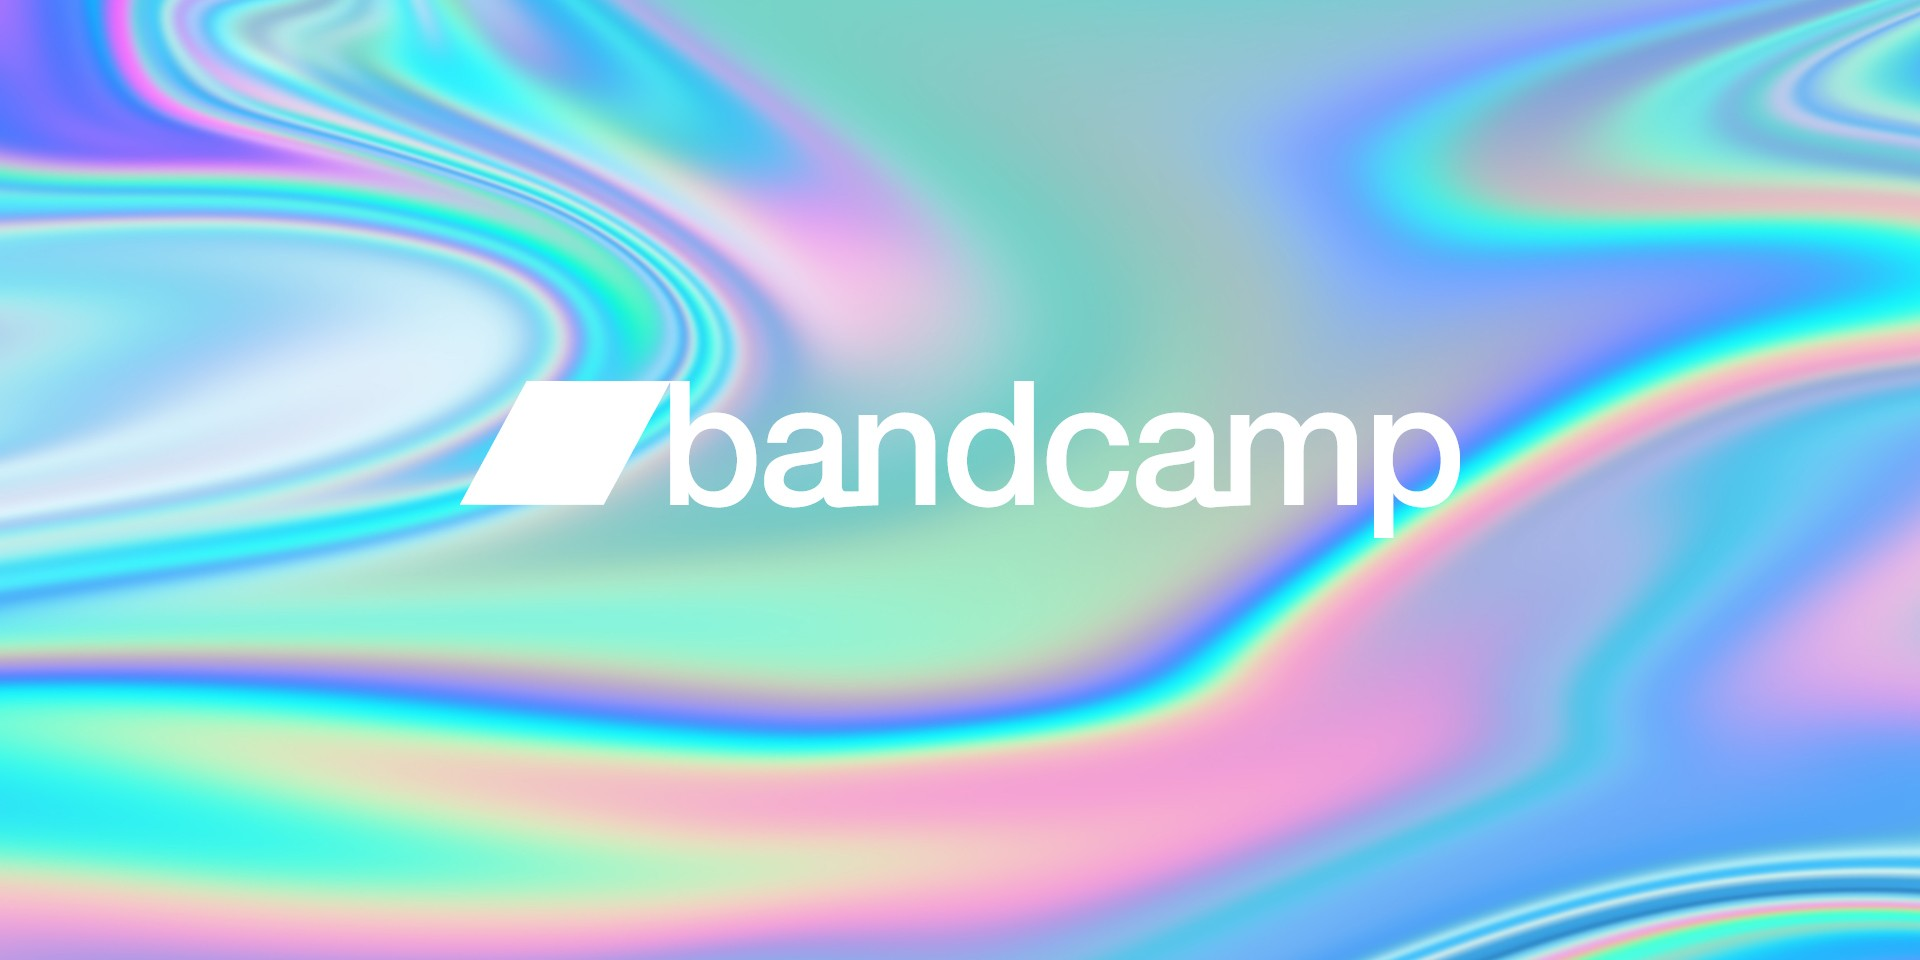 Bandcamp to waive revenue shares for 24 hours on Labor Day